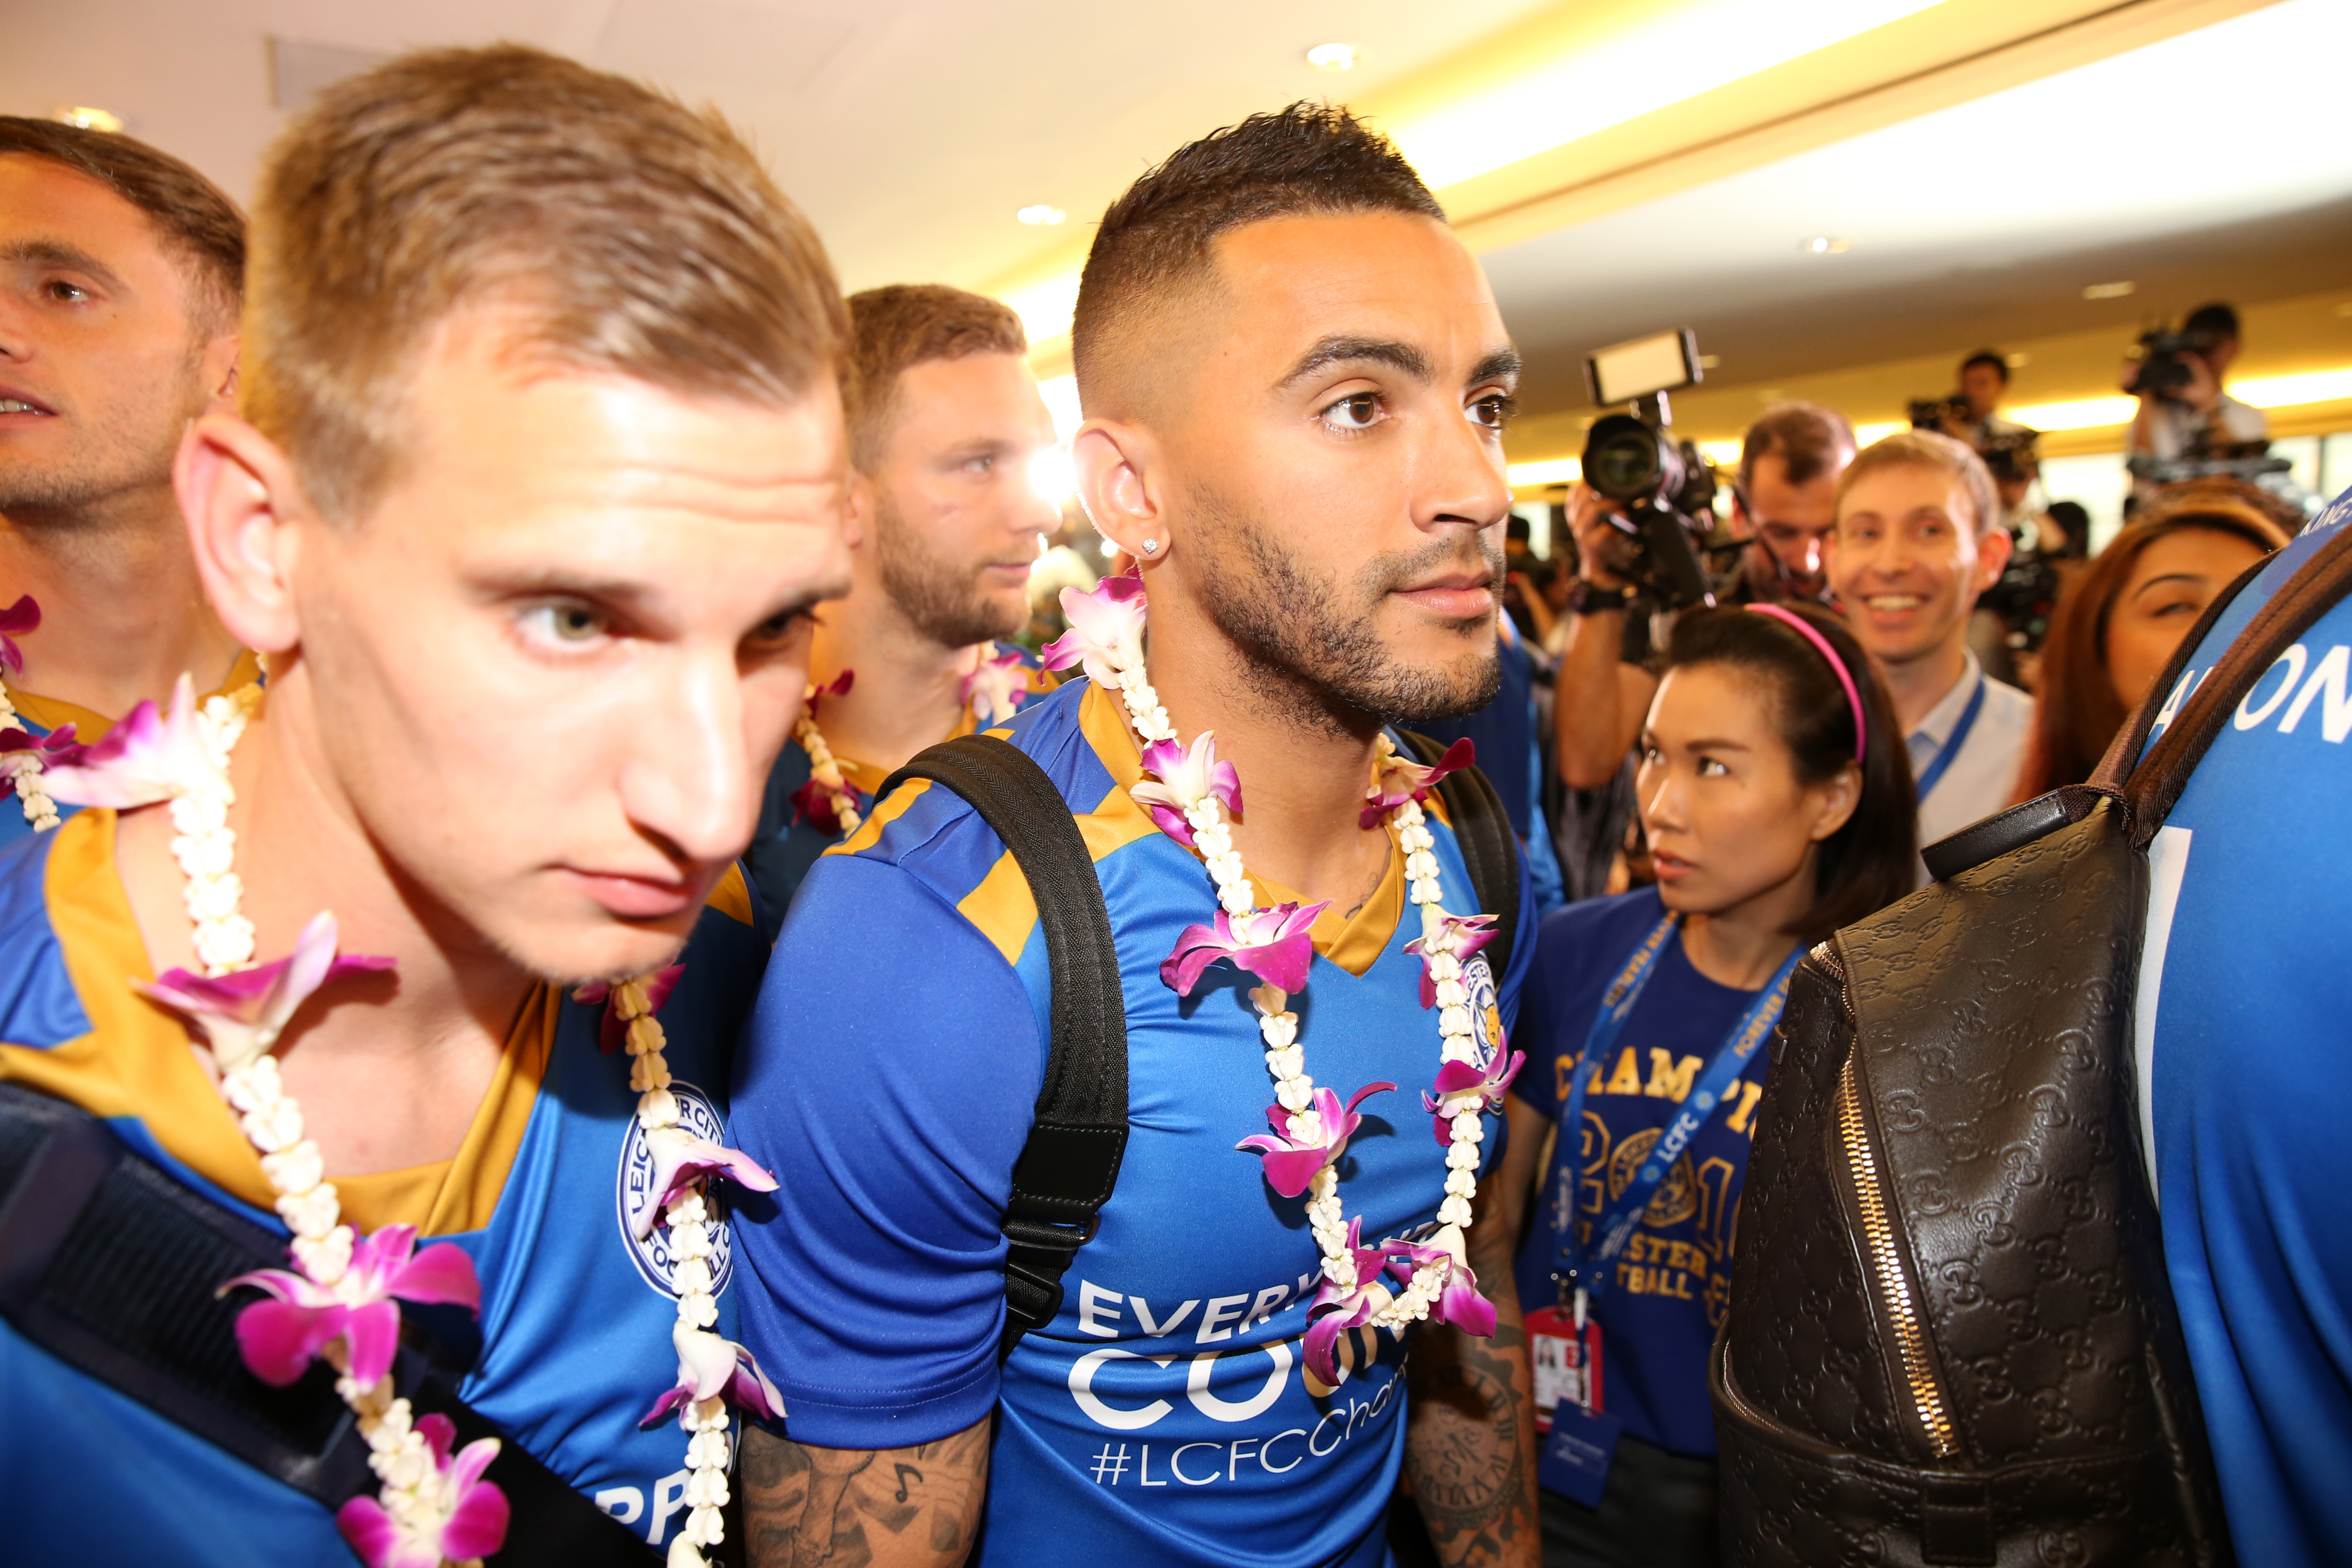 Leicester City's Marc Albrighton and Danny Simpson arrive in Bangkok for the Post-Season Tour of Bangkok on May 18, 2016.